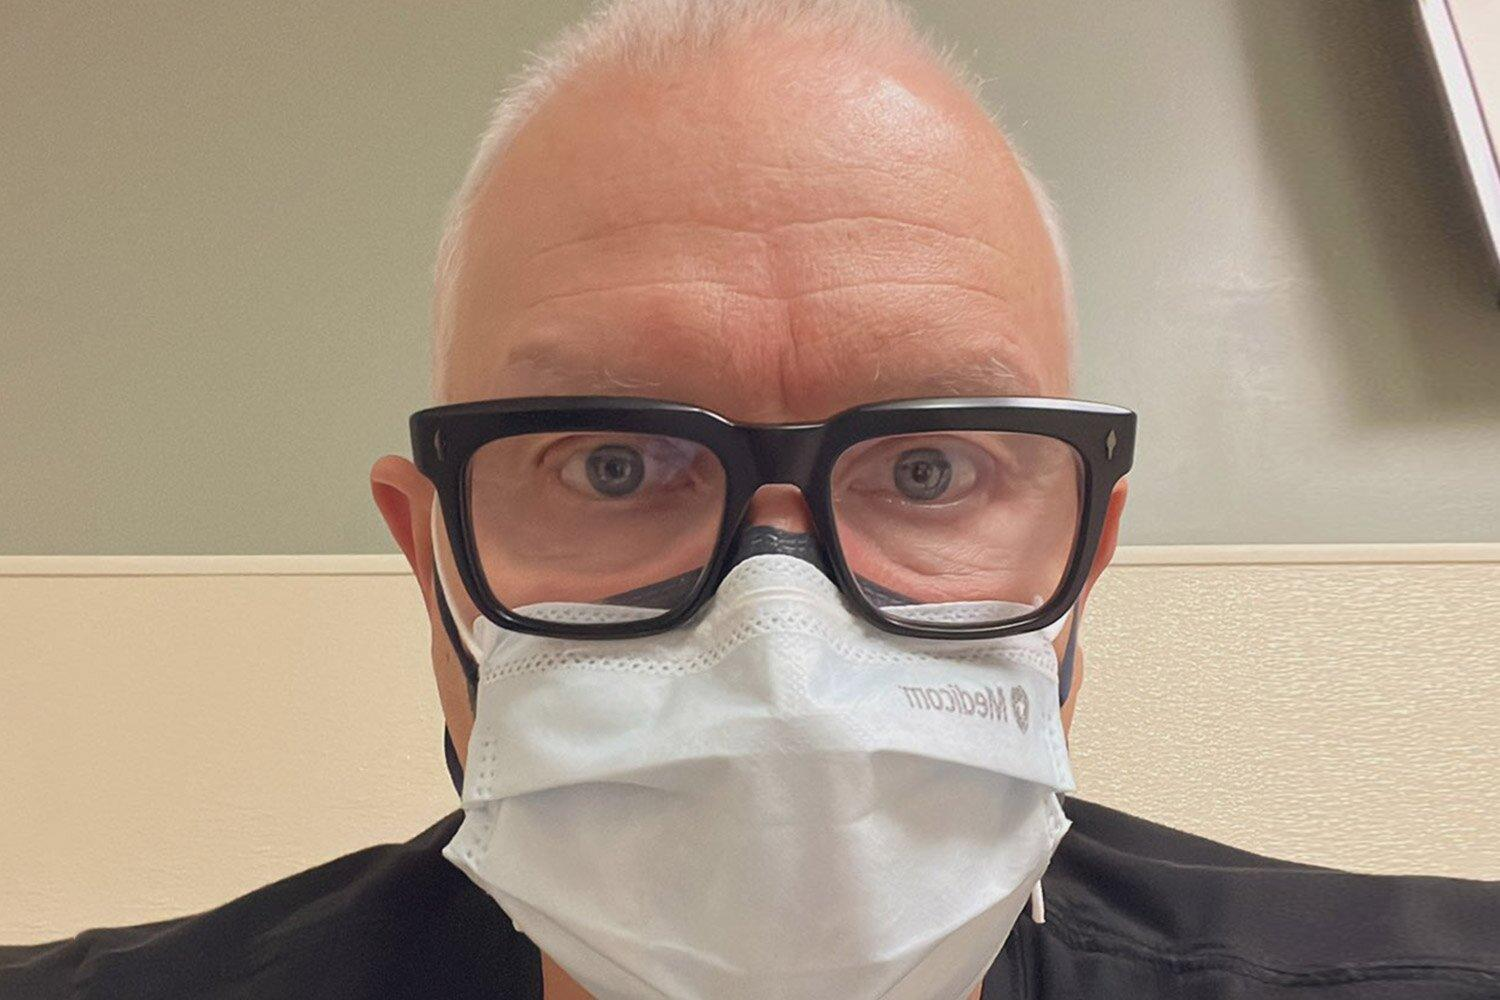 Mark Hoppus Undergoes Surgery to Remove Chemo Port After Announcing He's in Remission for Cancer